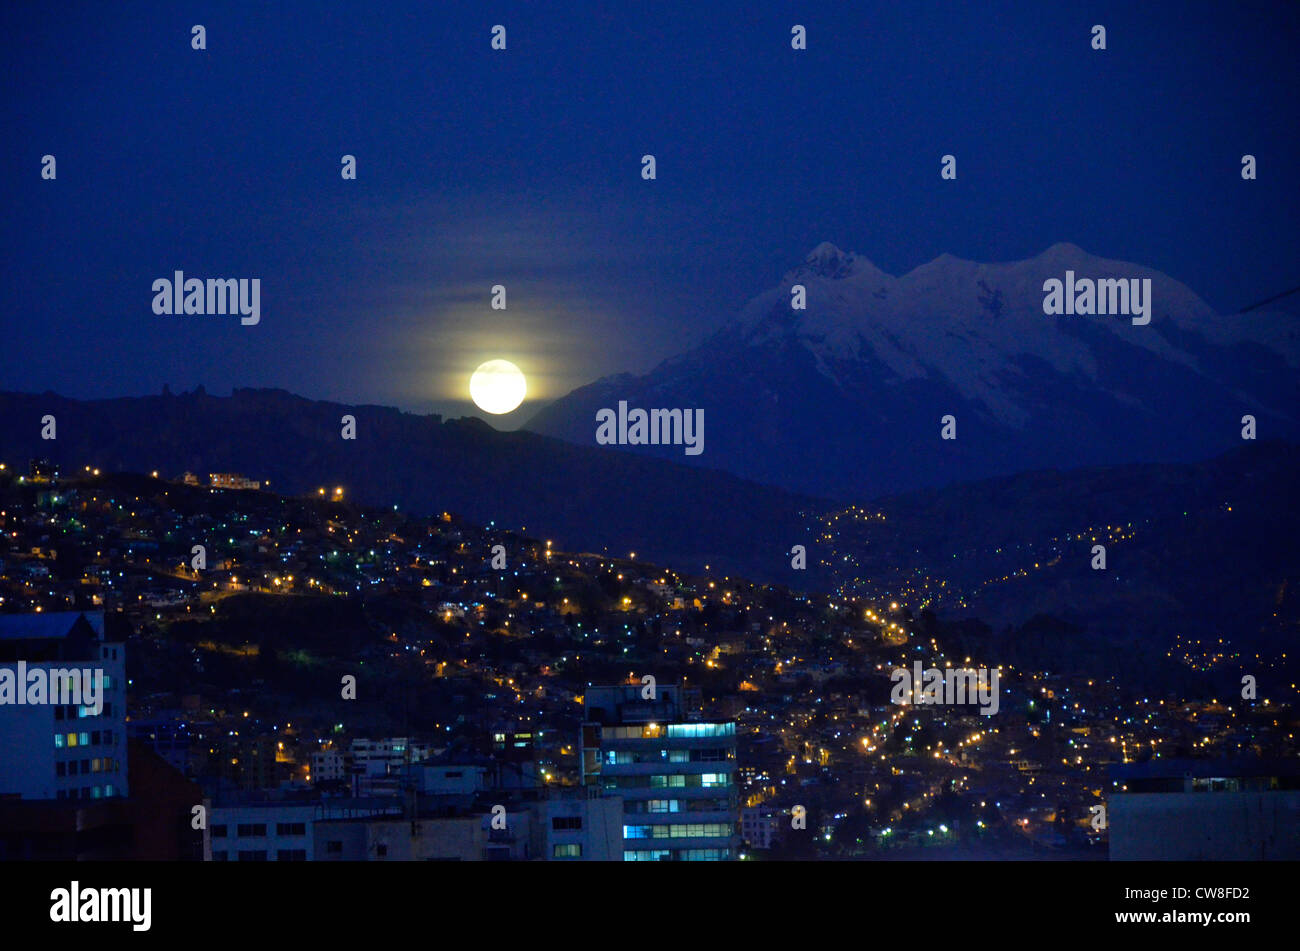 Moonrise over Huayna Potosí and La Paz, capital city of Bolivia, South America - Stock Image